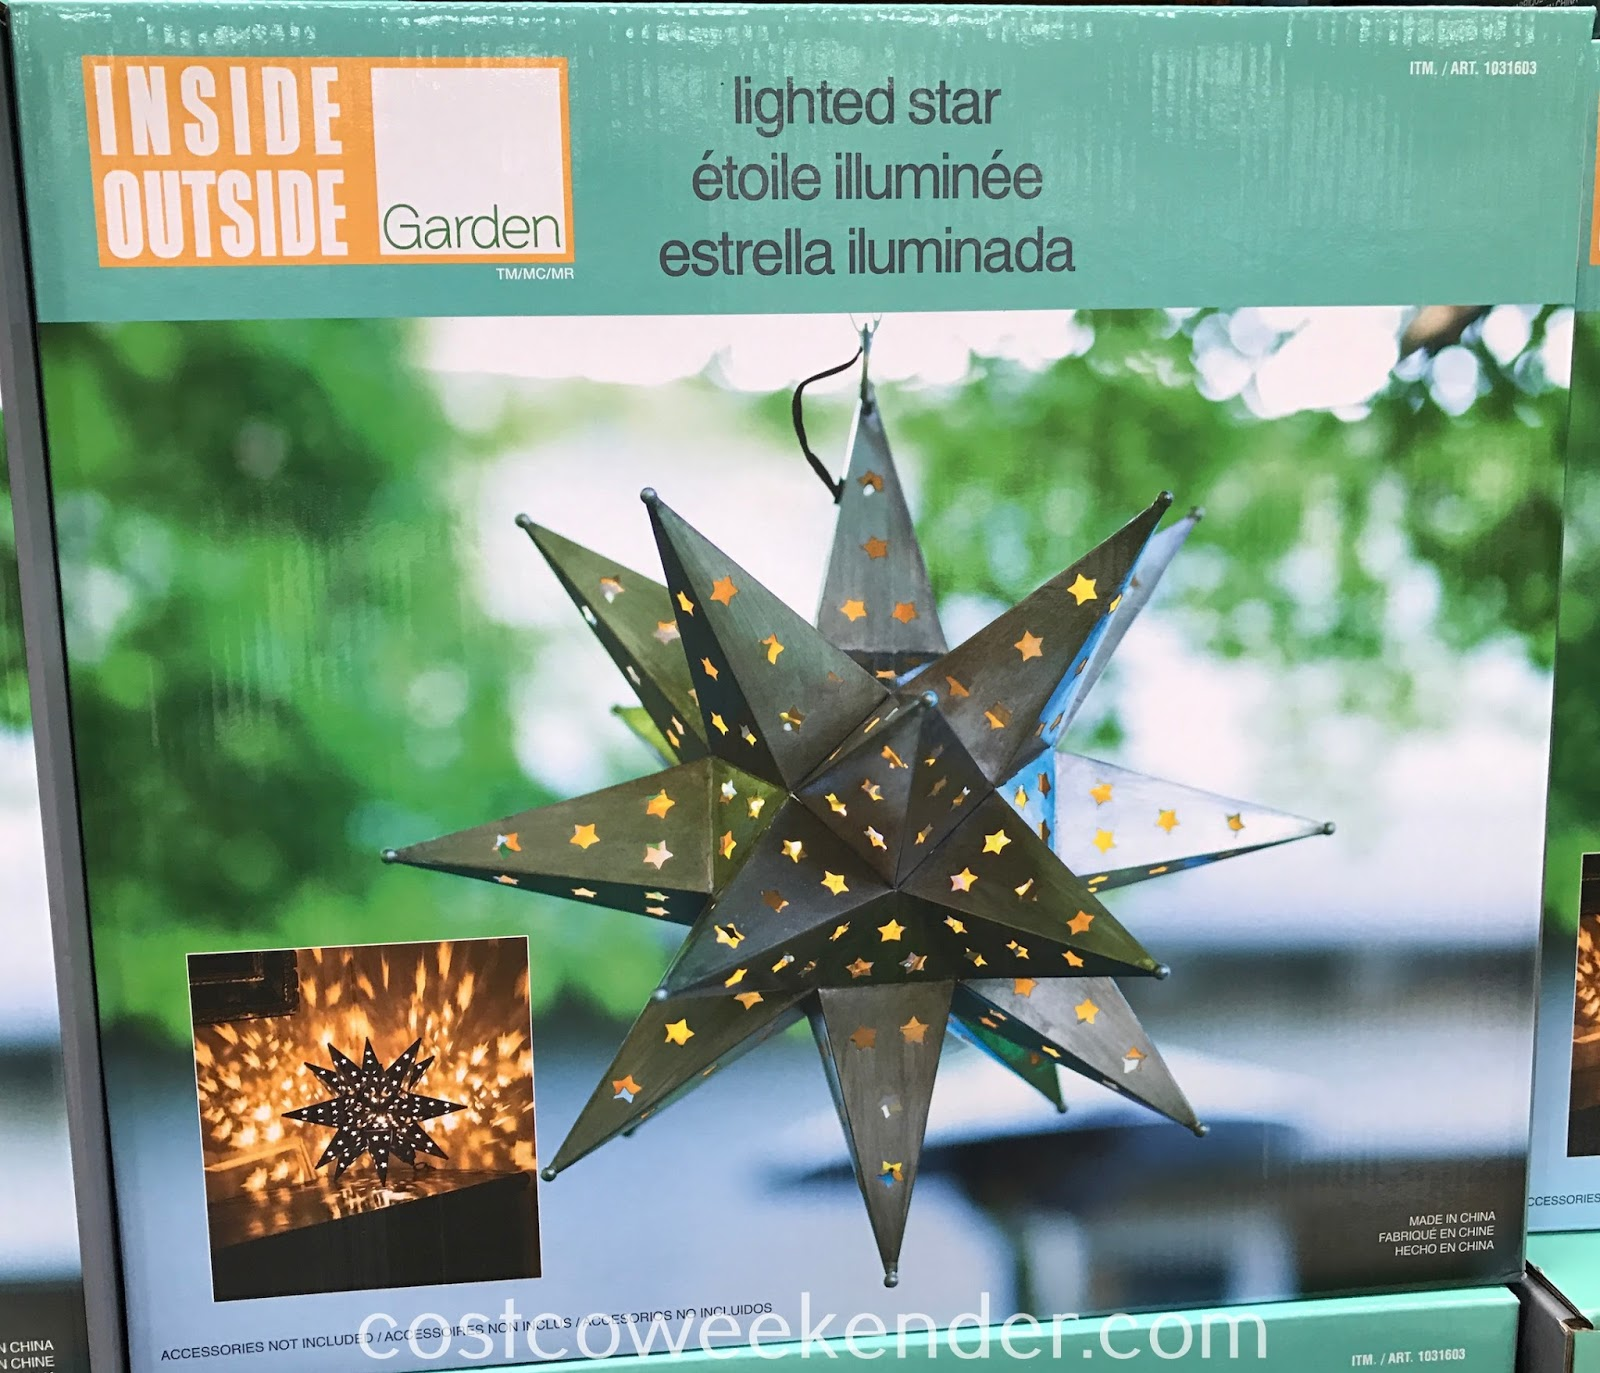 Add some character and decor to your home with the Inside Outside Garden LED Star Light